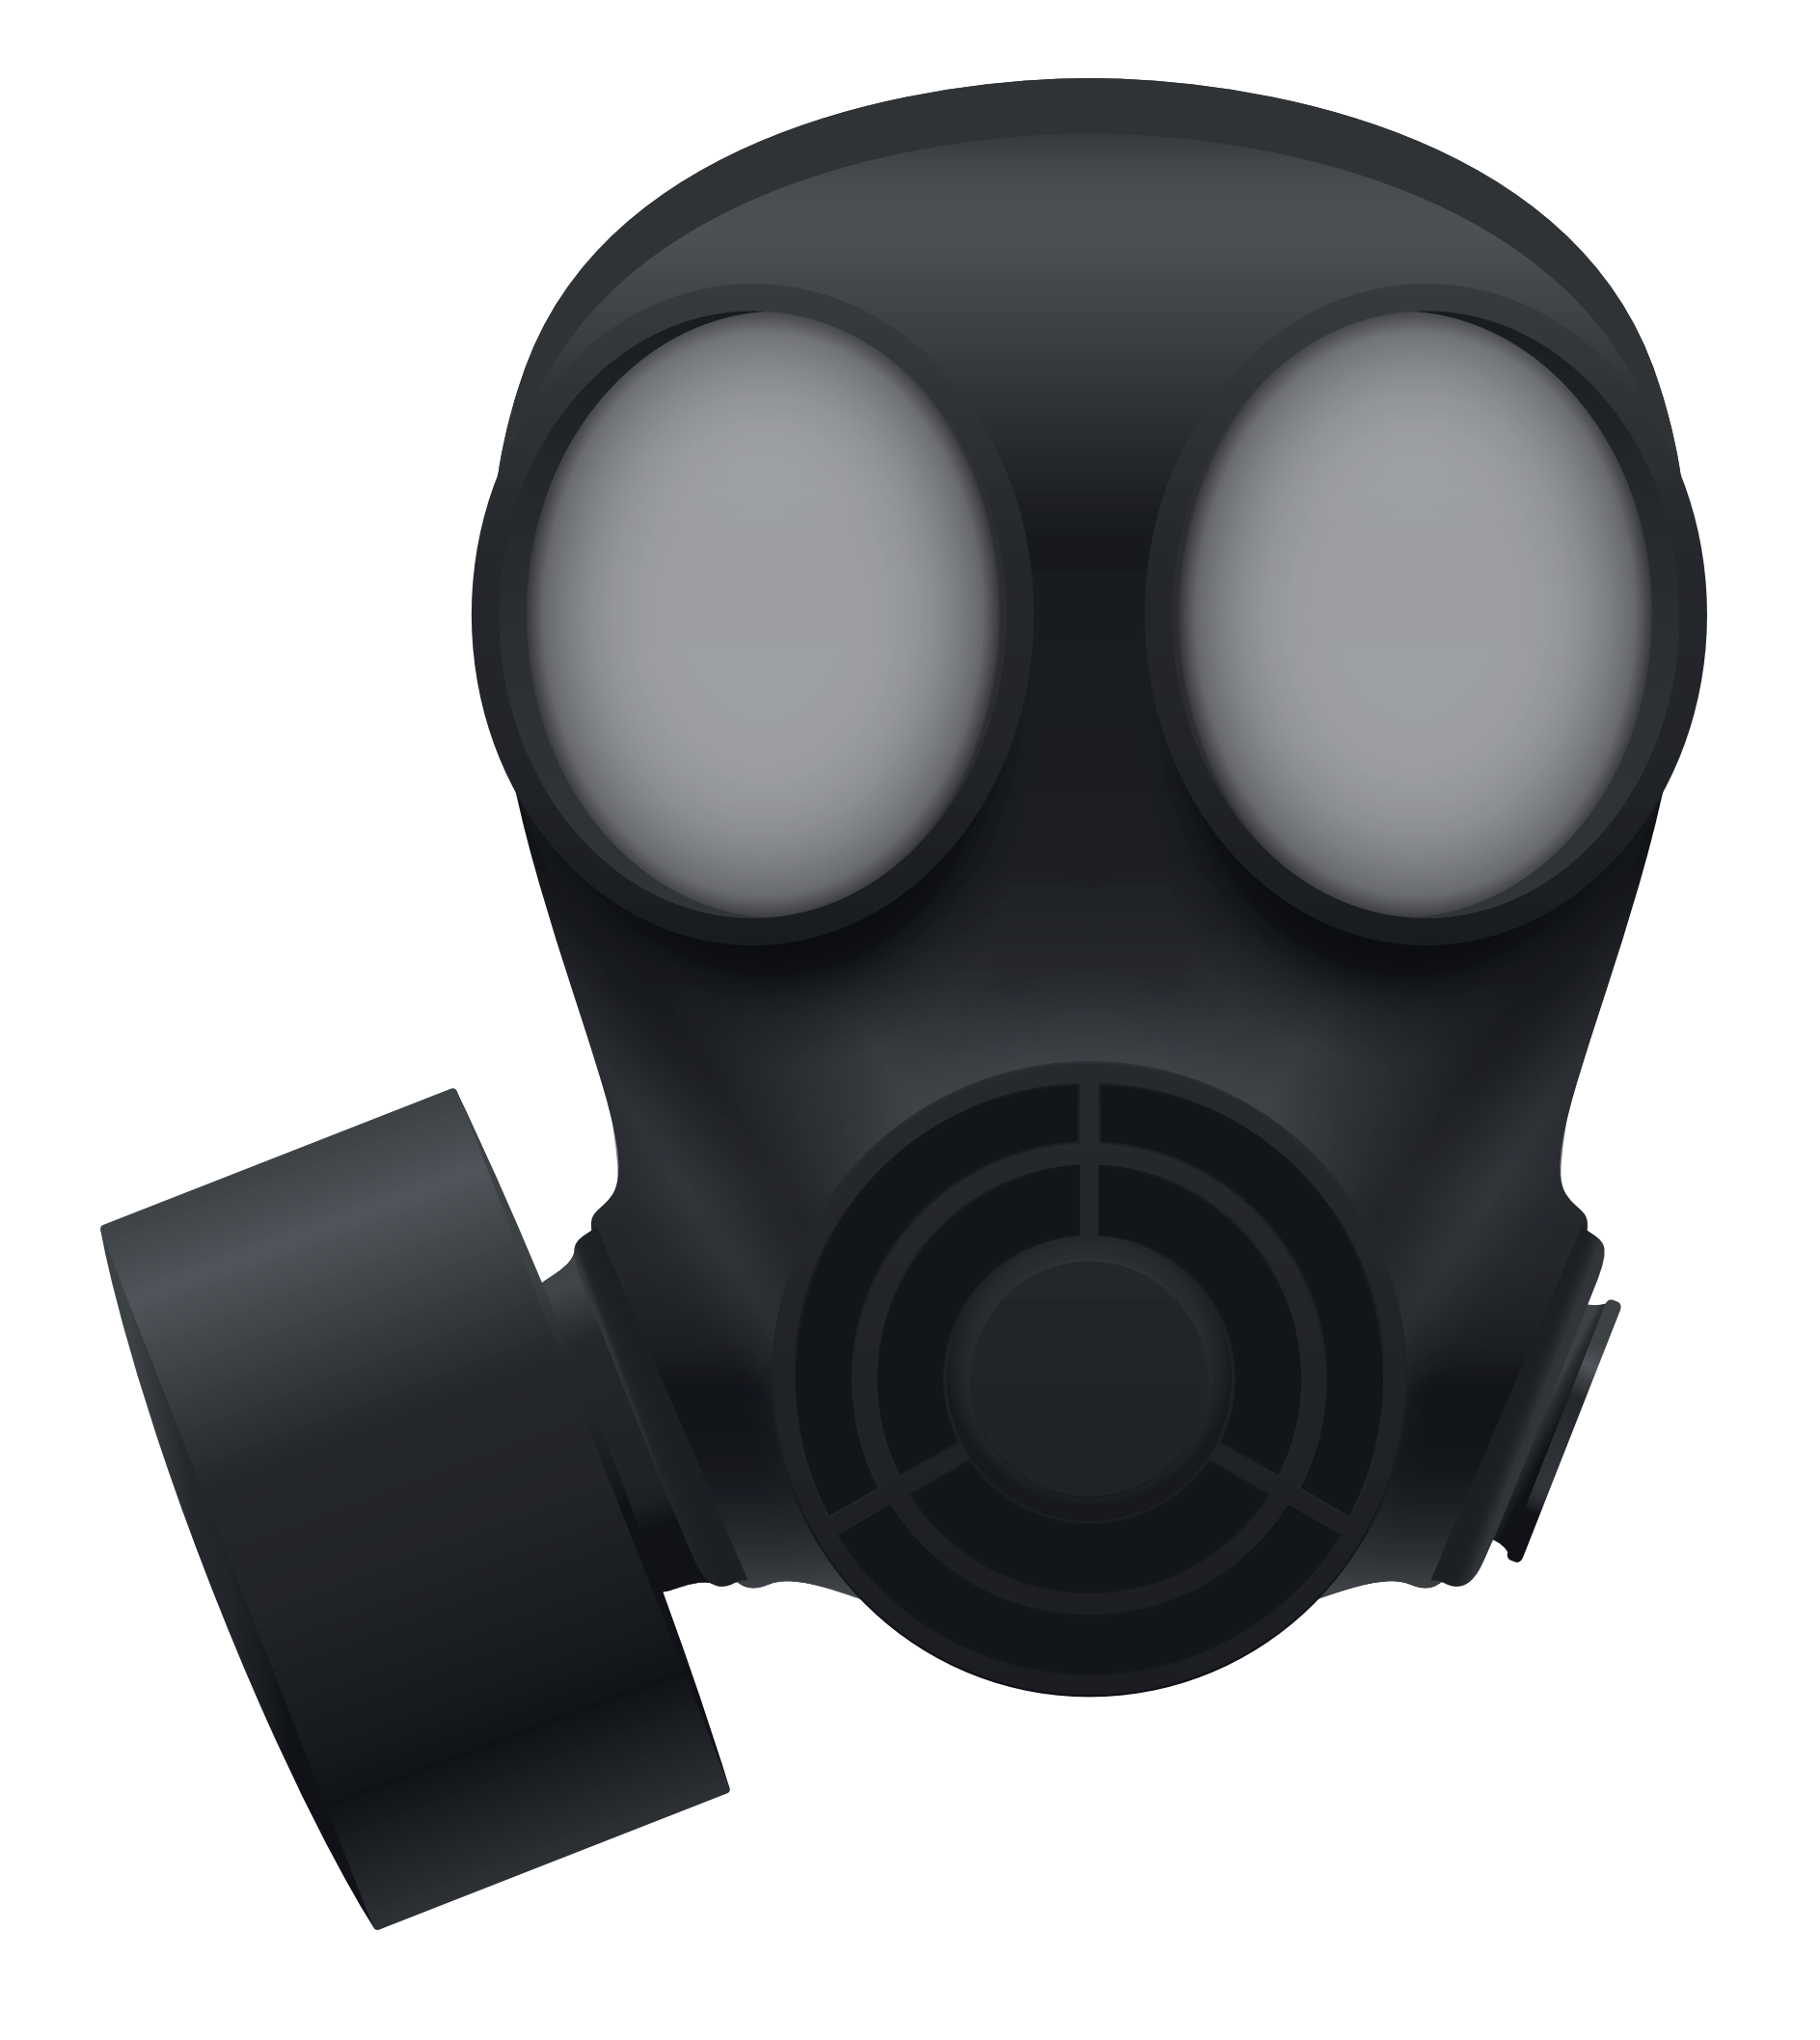 1887x2115 Mask Png Transparent Mask.png Images. Pluspng